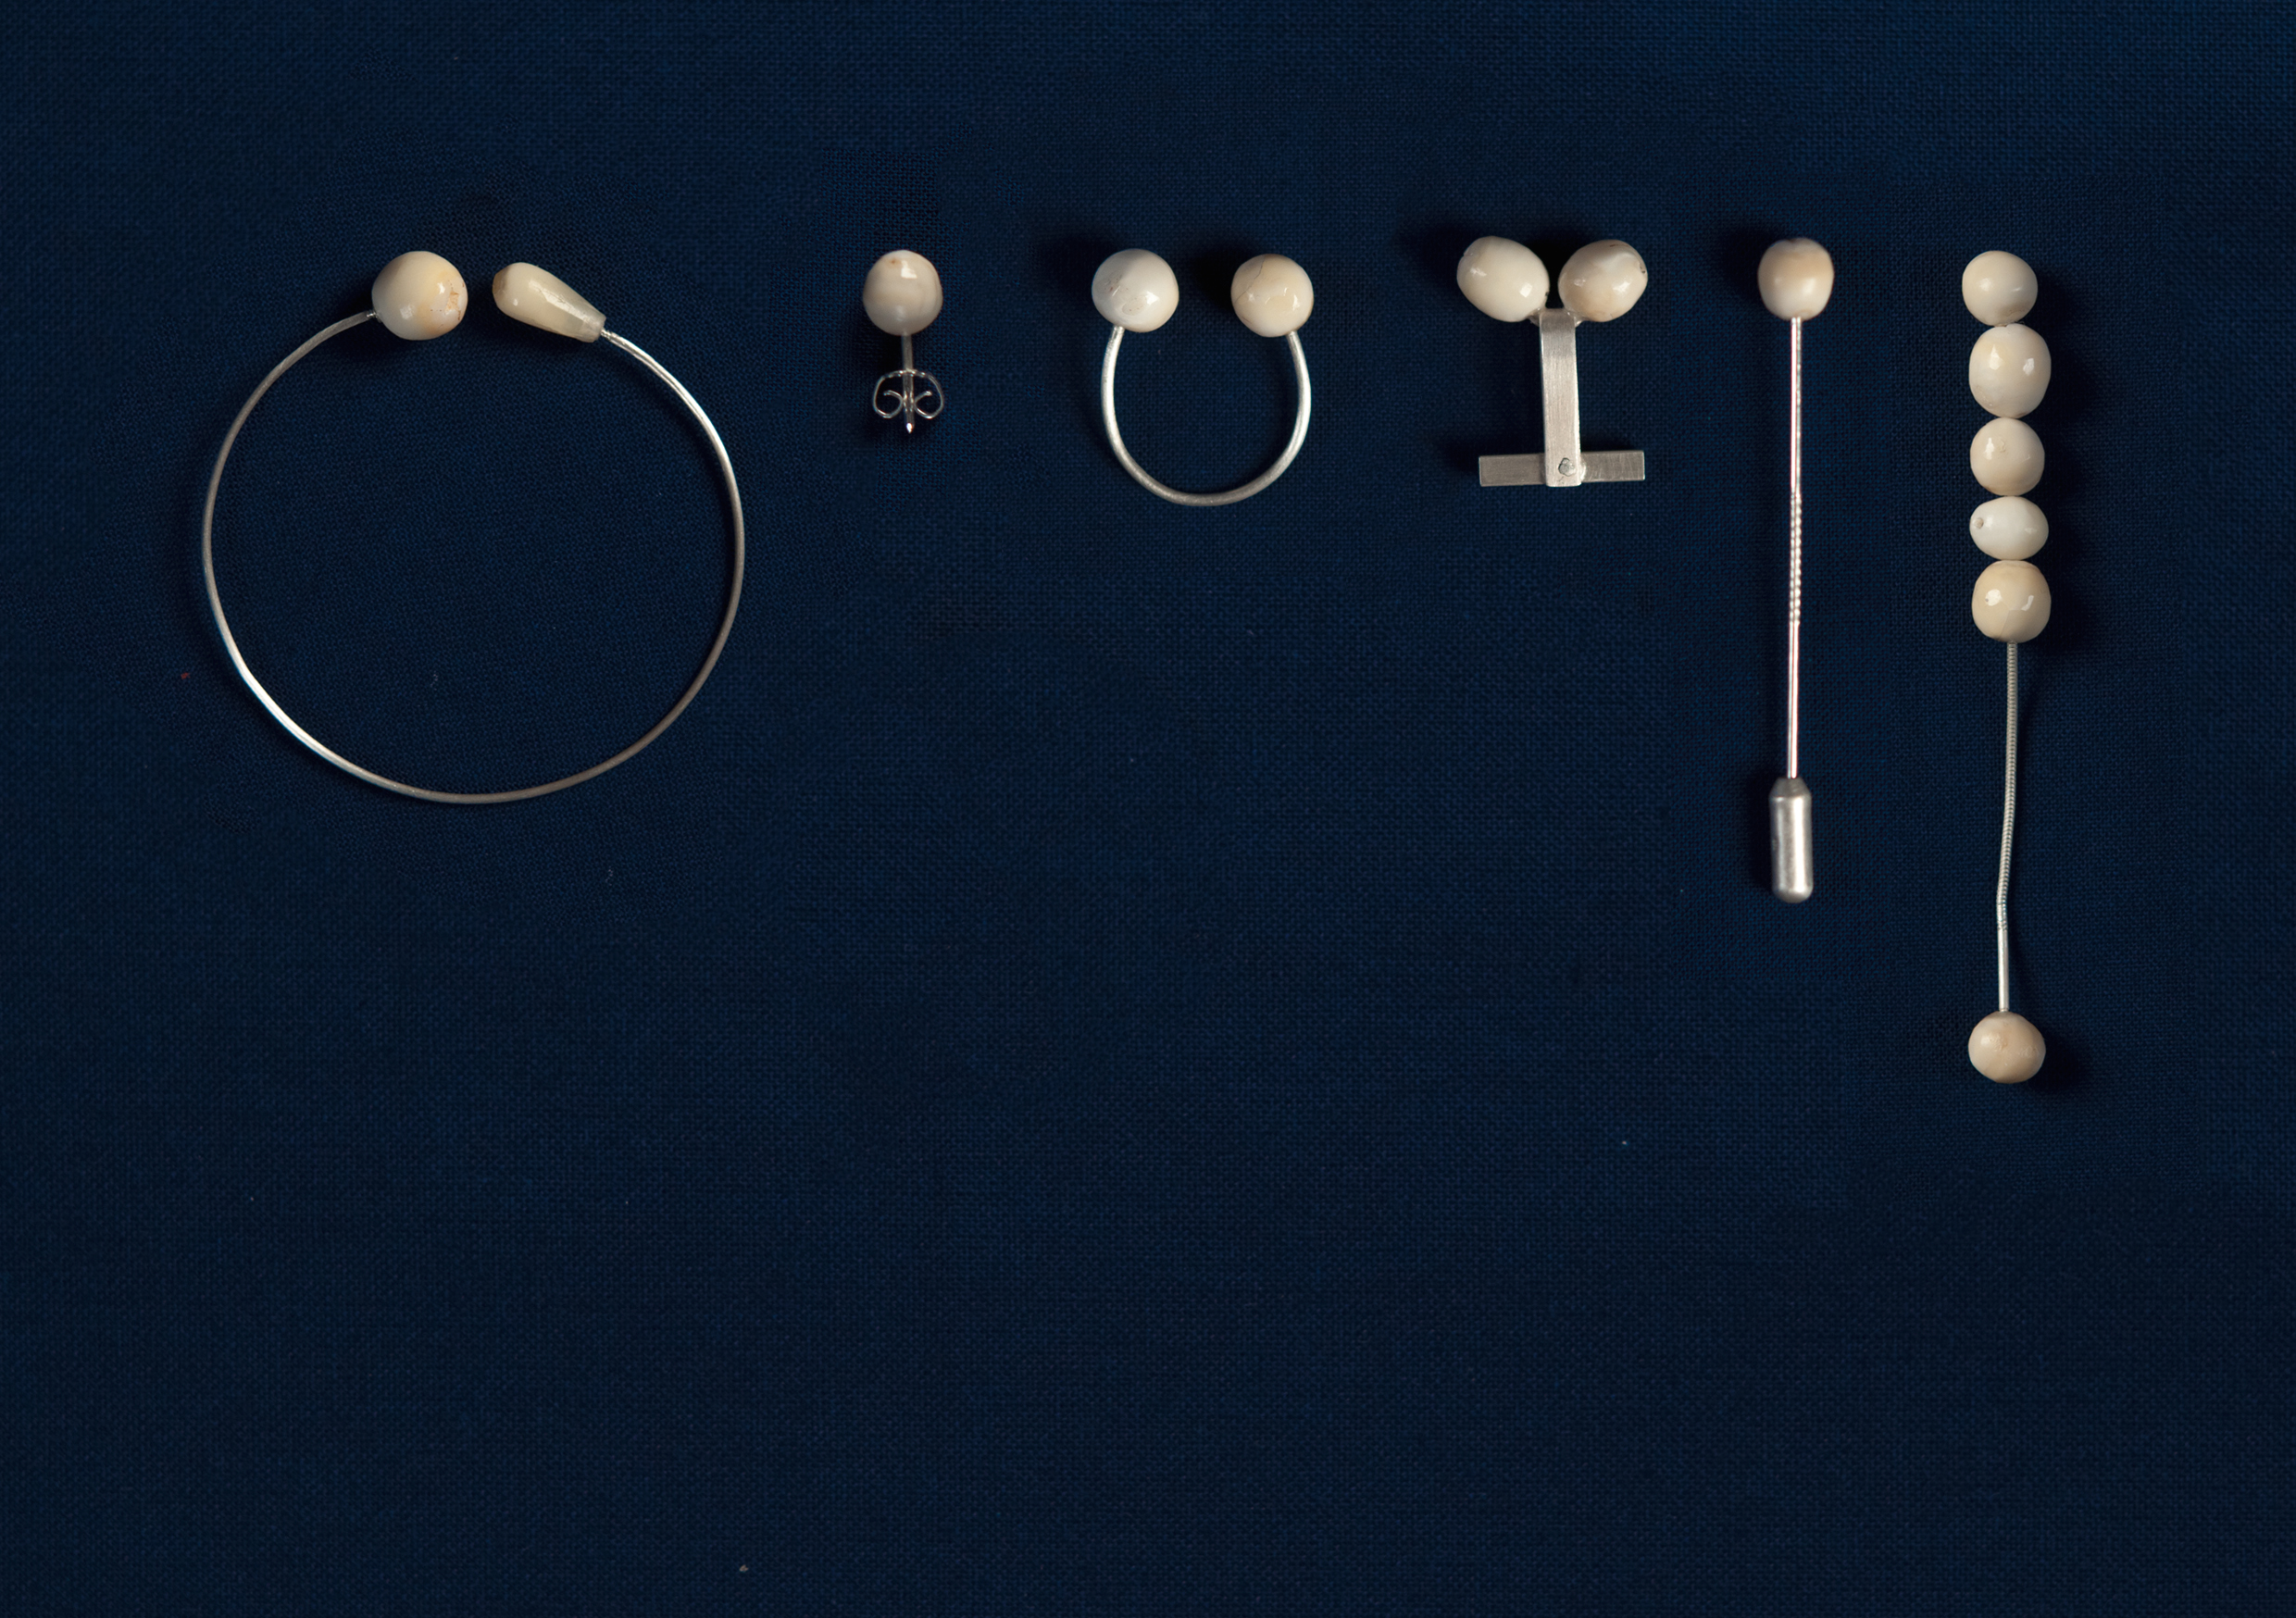 Human Ivory-overview photo by Lucie Majerus